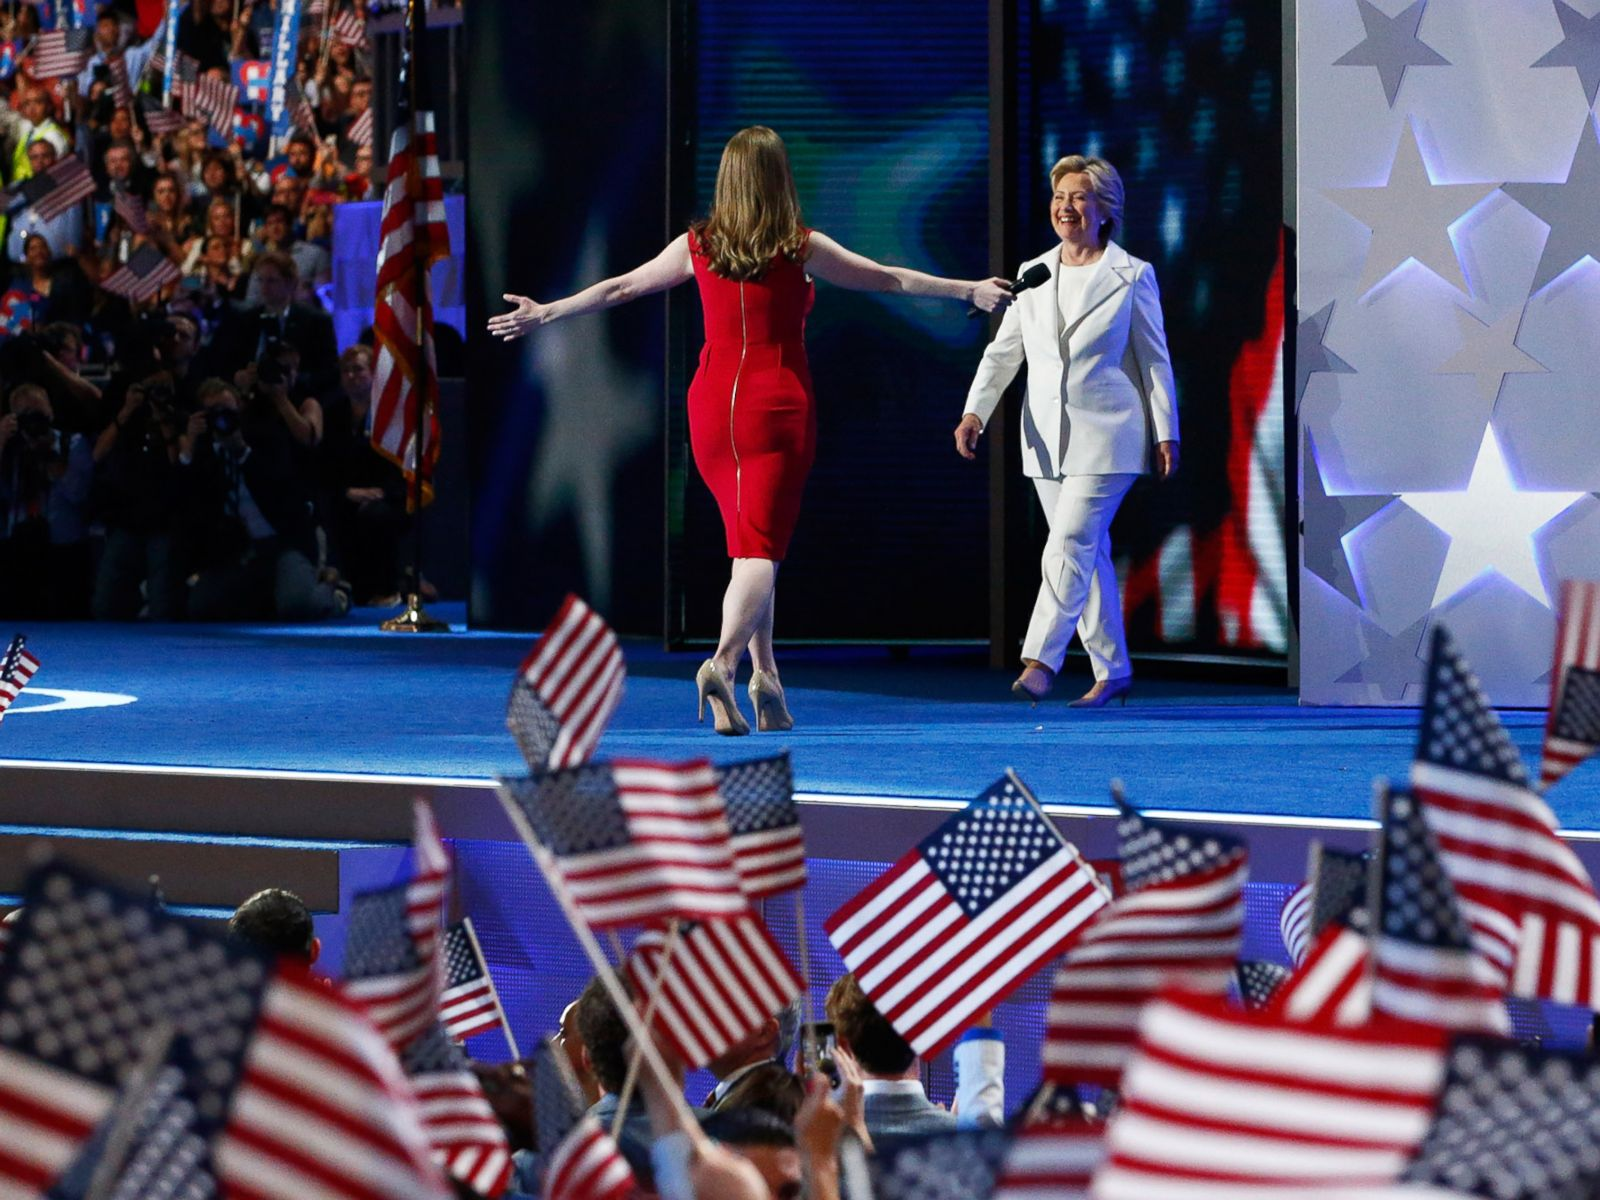 PHOTO: Democratic presidential nominee Hillary Clinton arrives on stage after her daughter Chelsea Clinton introduced her on the fourth day of the Democratic National Convention, July 28, 2016 in Philadelphia.